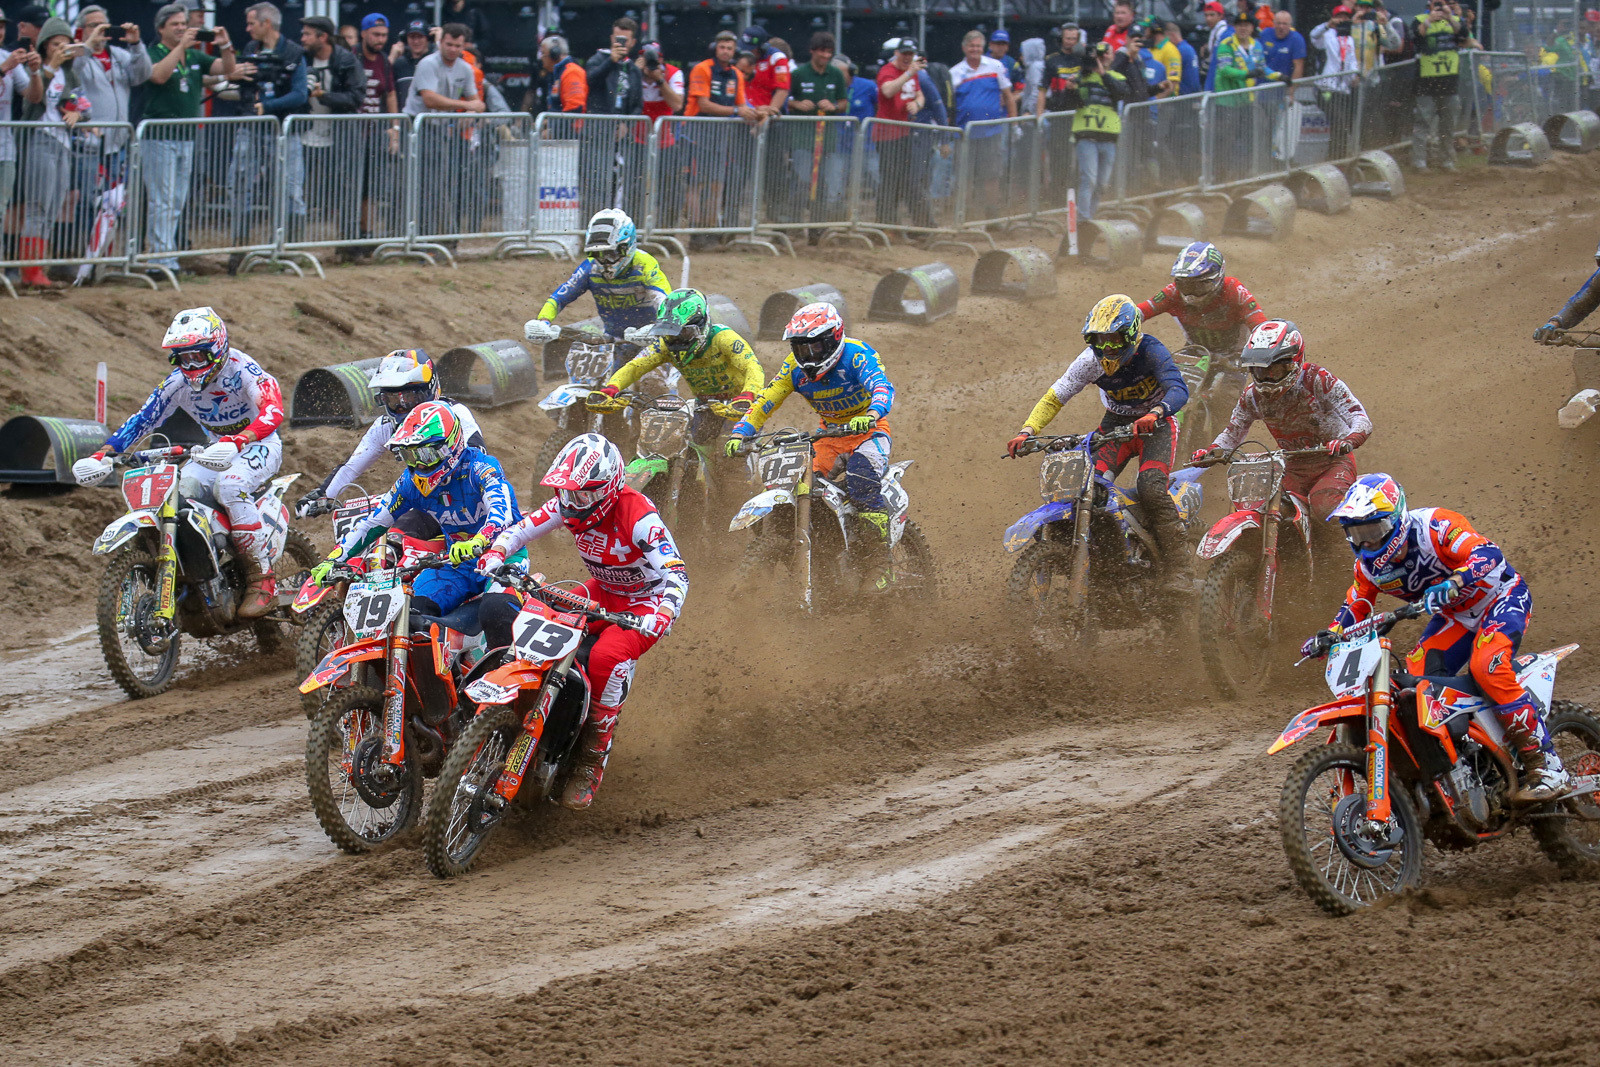 Coming into the first turn, Valentin Guillod (13) had to take evasive action to avoid collecting Antonio Cairoli (19). That may have spooked Jeffrey Herlings (4), who lost the front end and went down hard right after this.